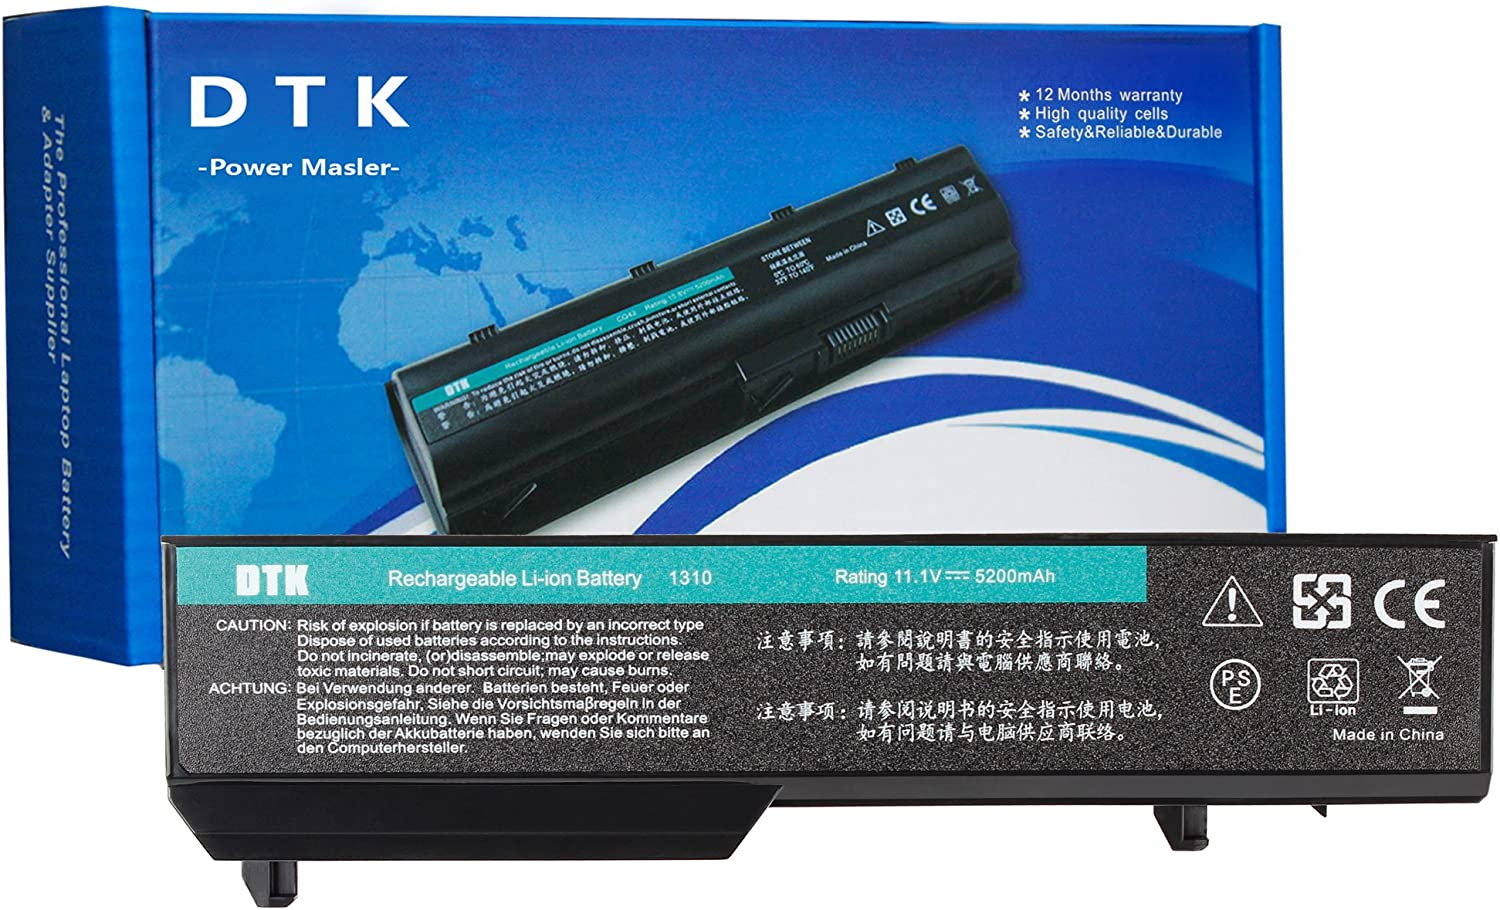 DTK K738H T114C Laptop Battery Replacement for DELL Vostro 1310 1320 1510 1511 1520 2510 PP36L PP36S Notebook [ 6-Cell 11.1v 5200mah/56wh]